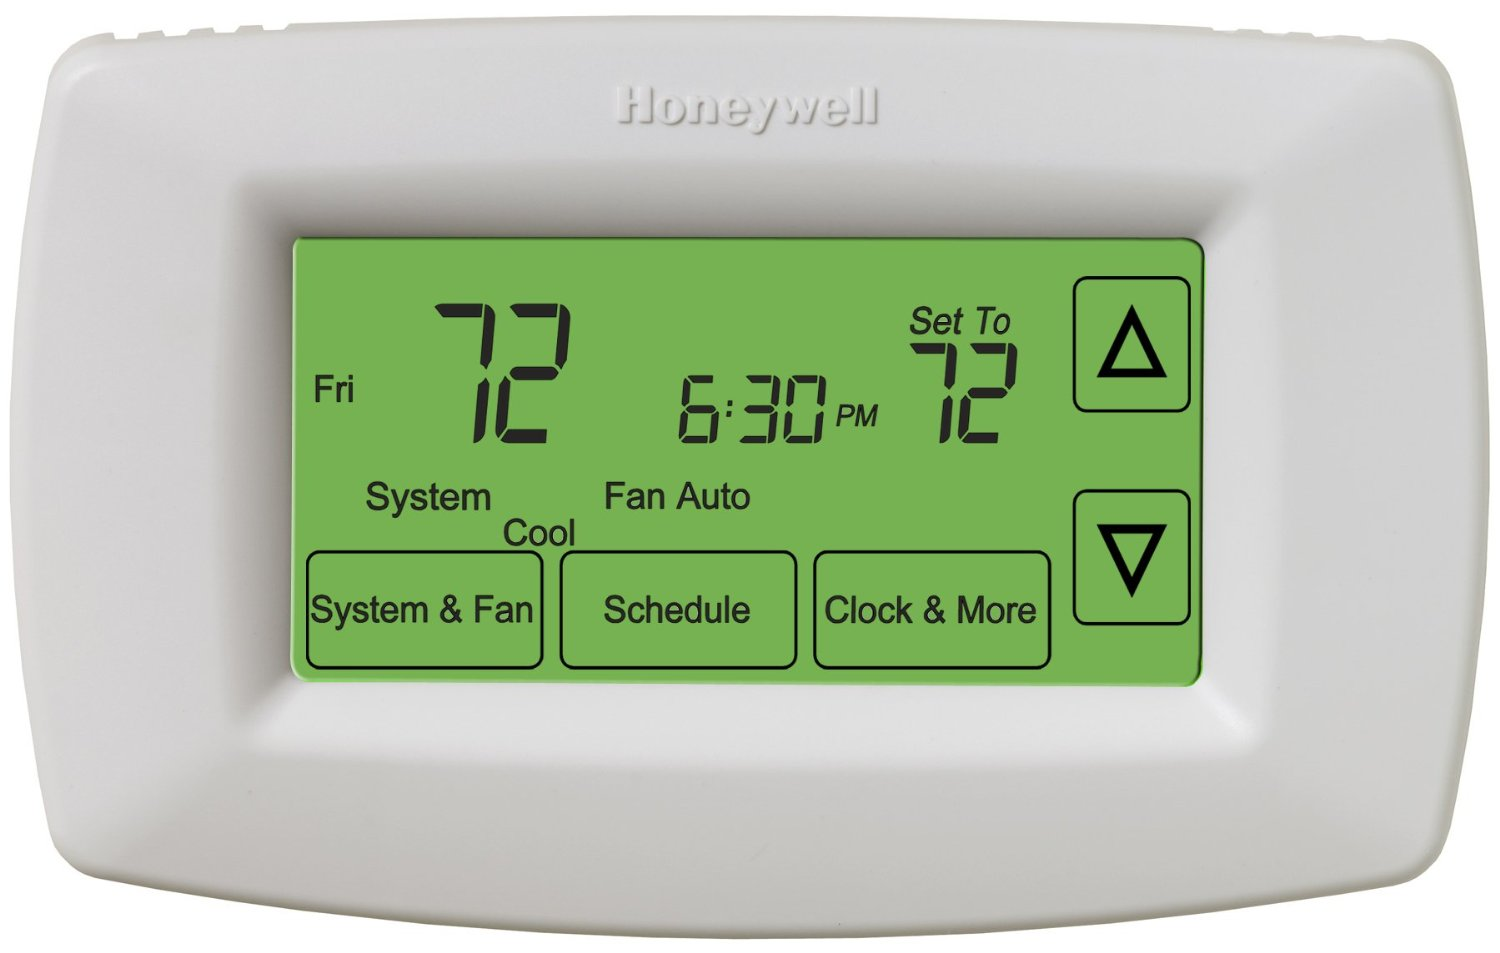 Honeywell RTH7600D Touchscreen 7 Day Programmable Thermostat mathew kevin, author at best digital thermostat reviews and buying honeywell rth111b1016 wiring diagram at virtualis.co